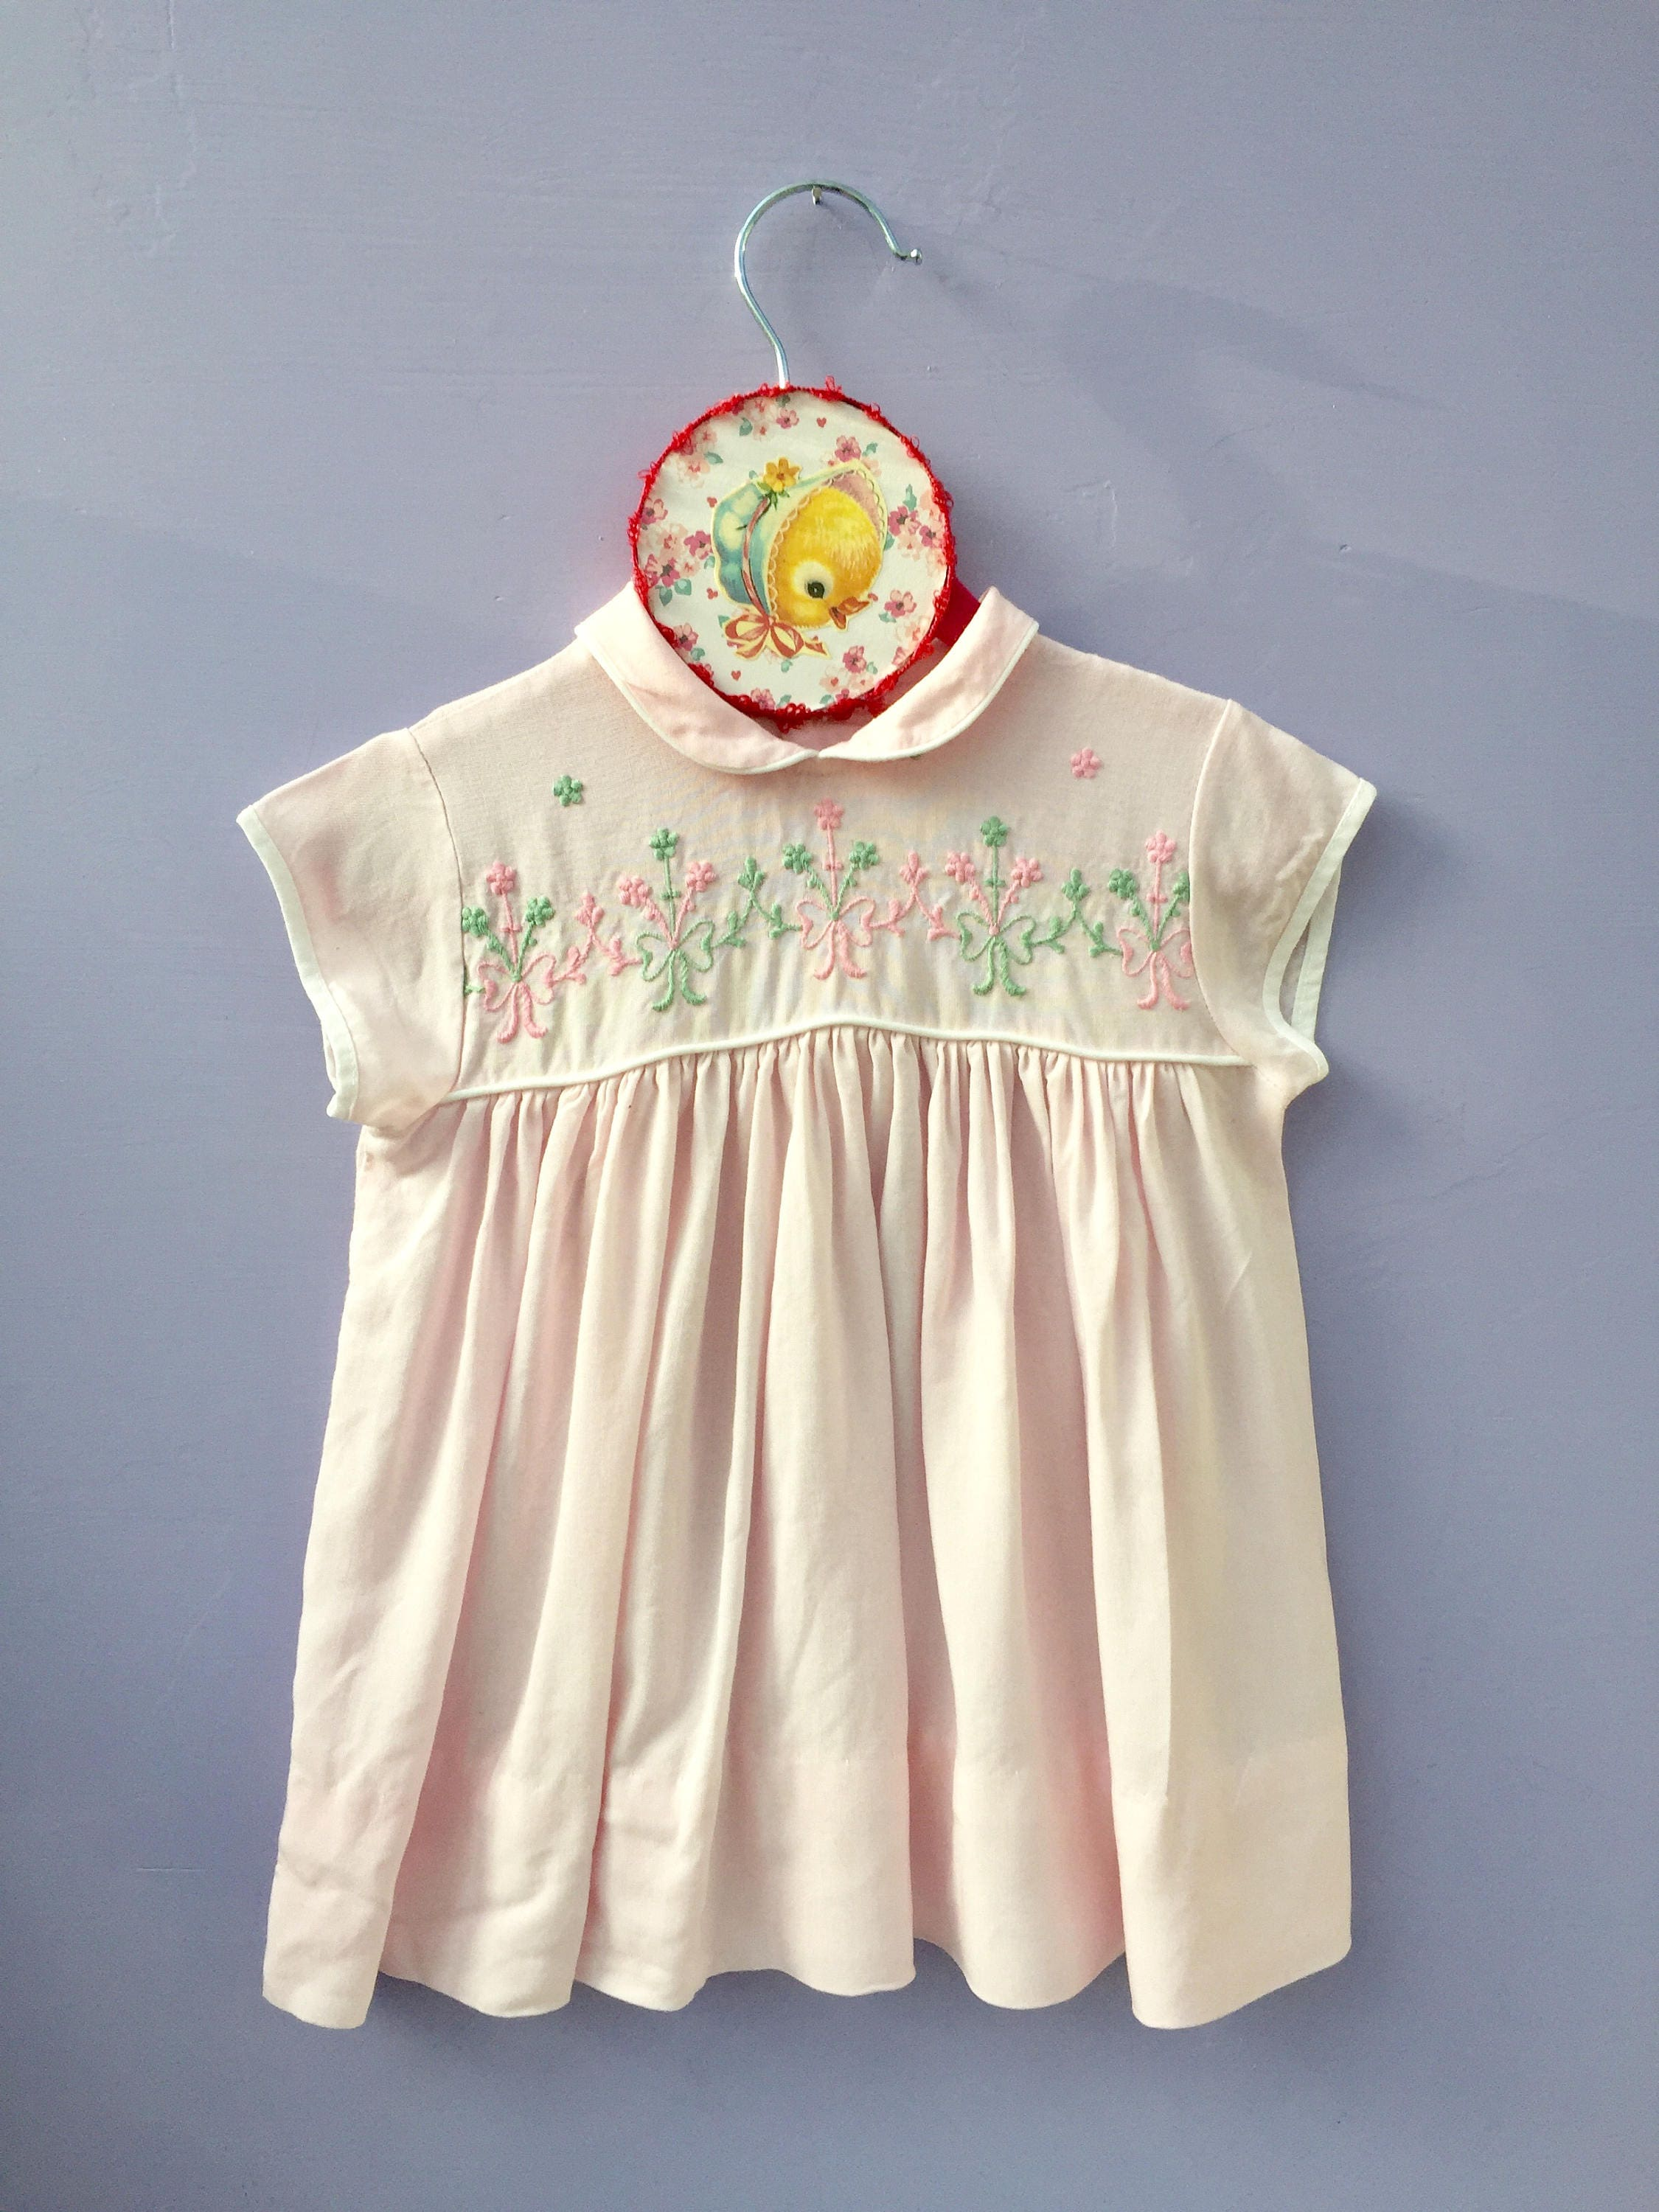 6c3bd45f1fc4 Vintage Little Girl Dress